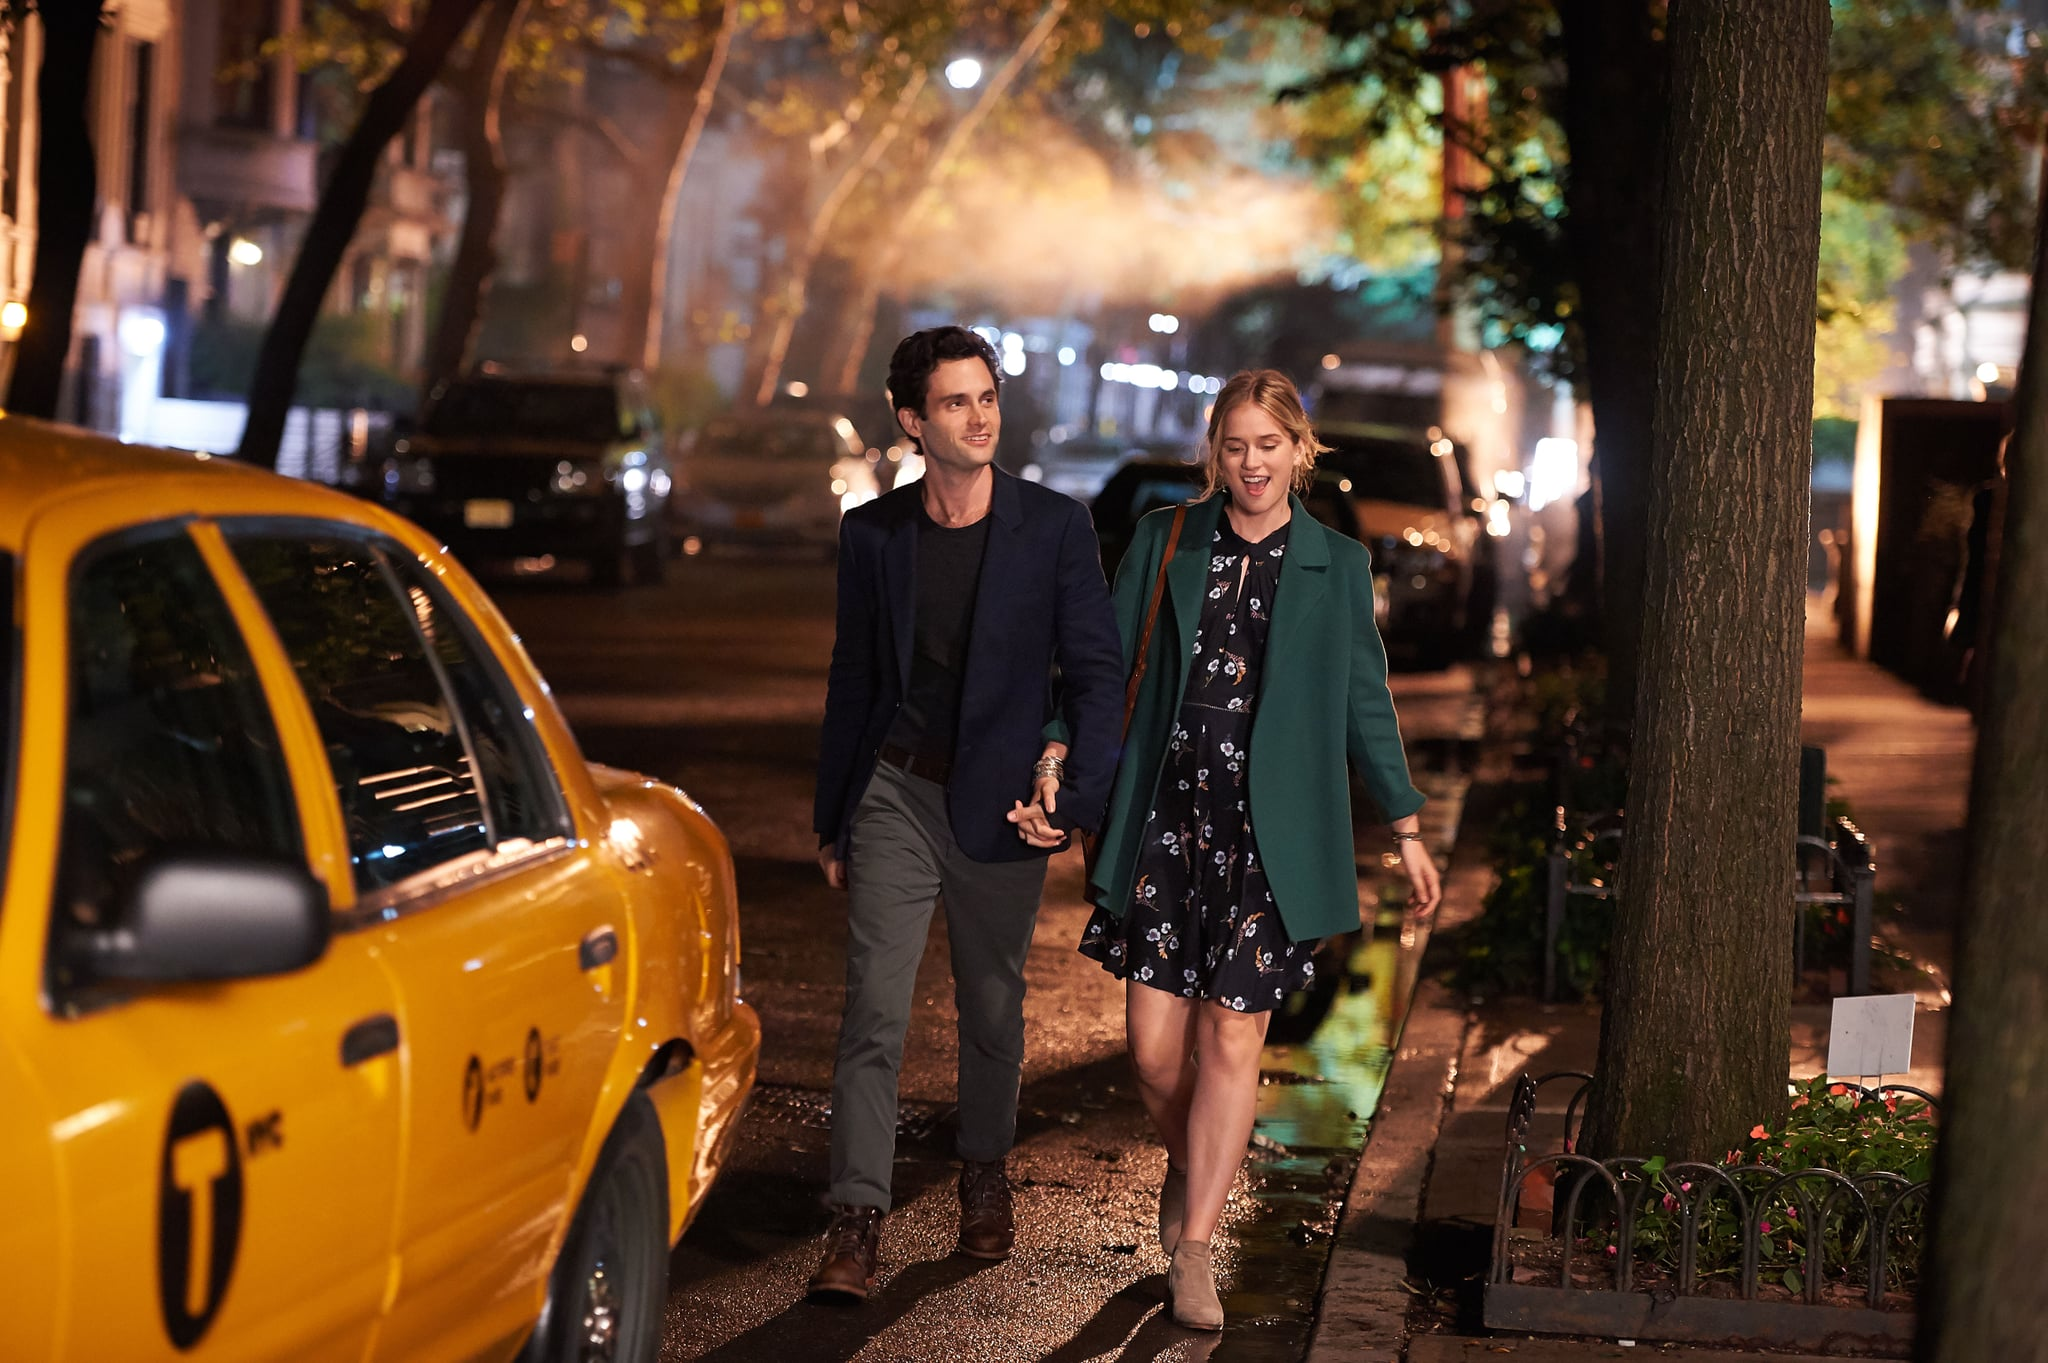 YOU, from left: Penn Badgely, Elizabeth Lail in 'The Last Nice Guy in New York', (Season 1, Episode 102, aired September 16, 2018).  Lifetime / courtesy Everett Collection